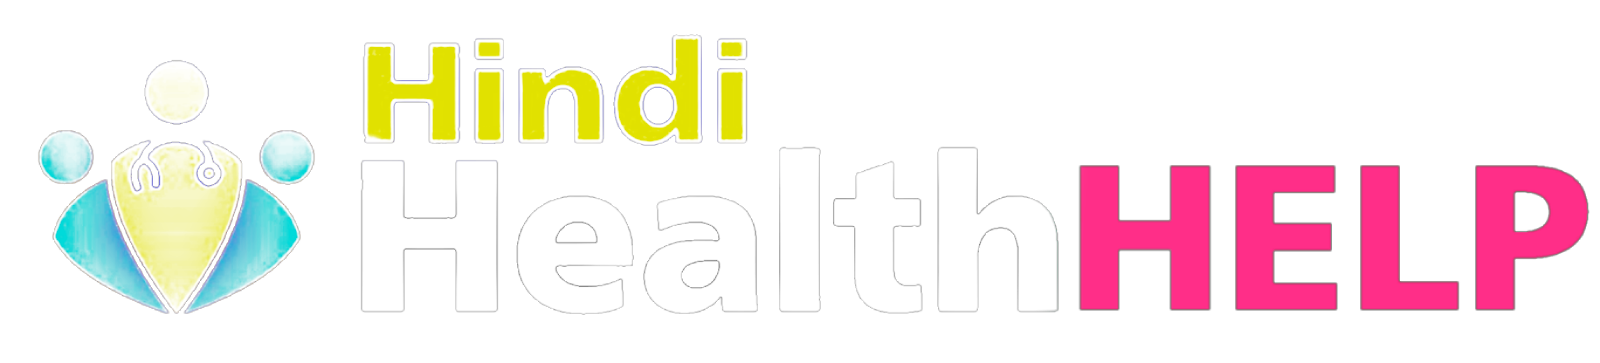 Hindi Health Help - Health ki Jankari Hindi Me